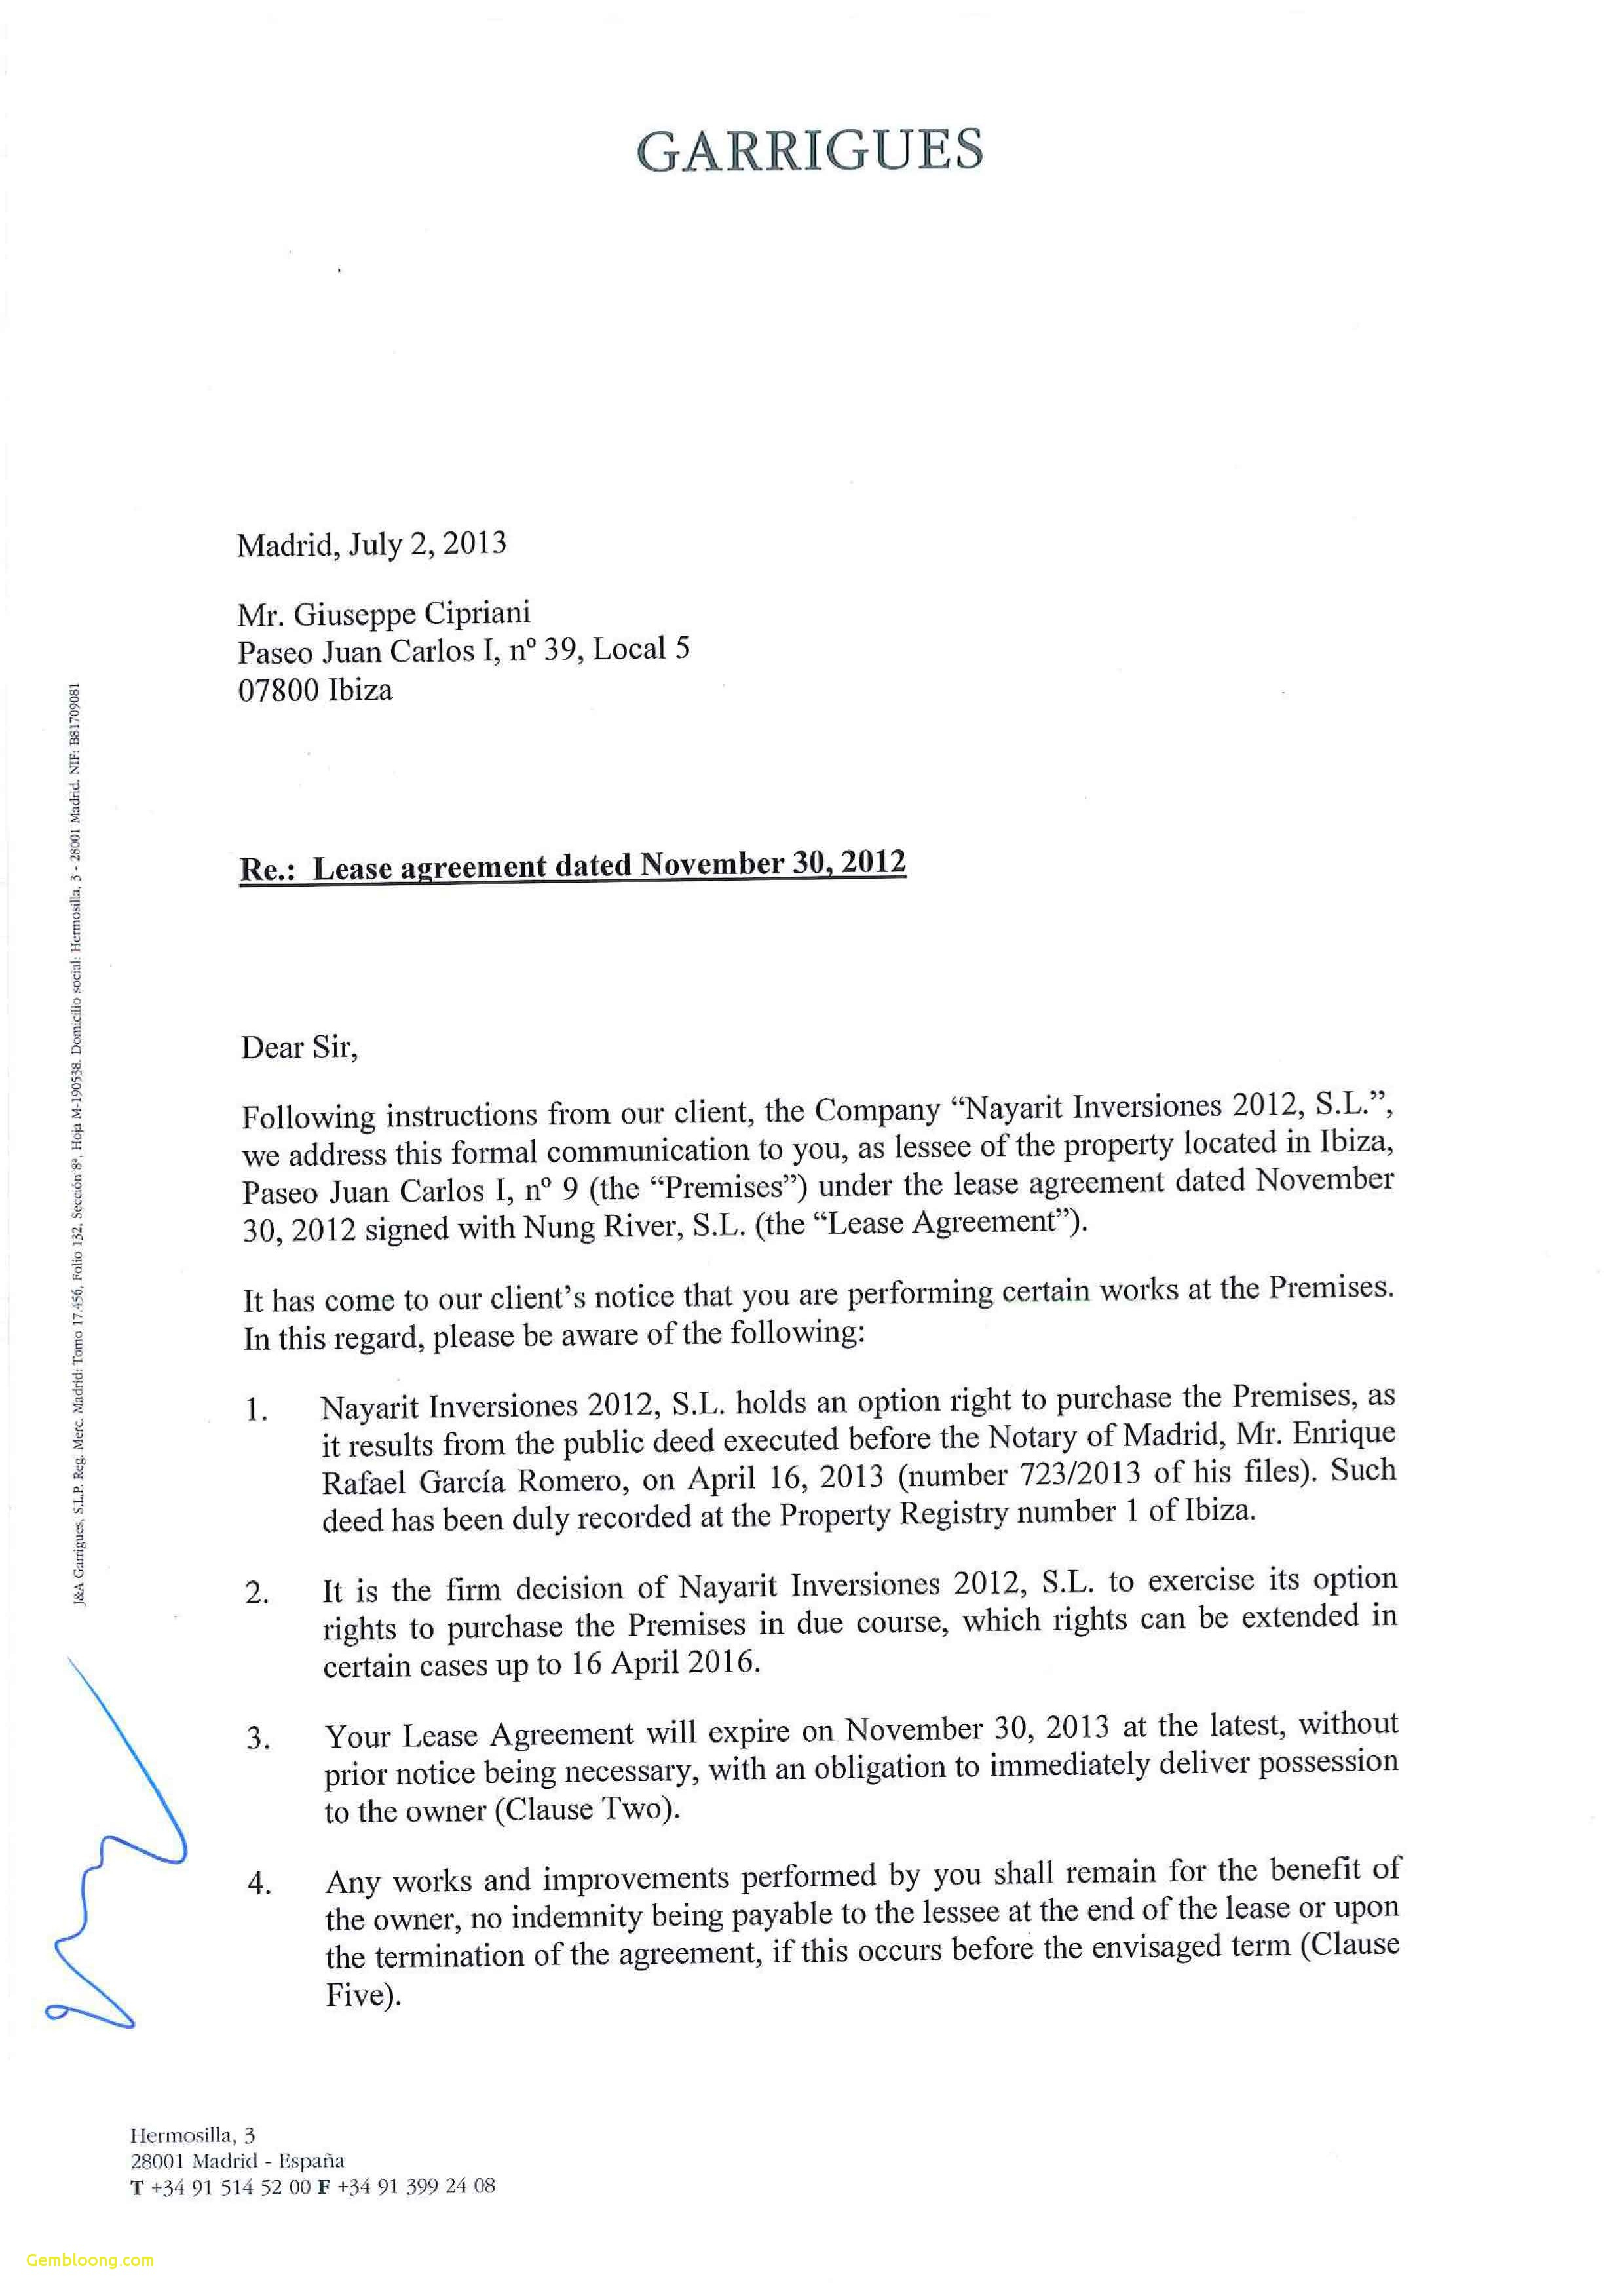 Nonrenewal Of Lease Letter Template - Declaration Letter Sample Non Renewal Lease Letter Nonrenewal